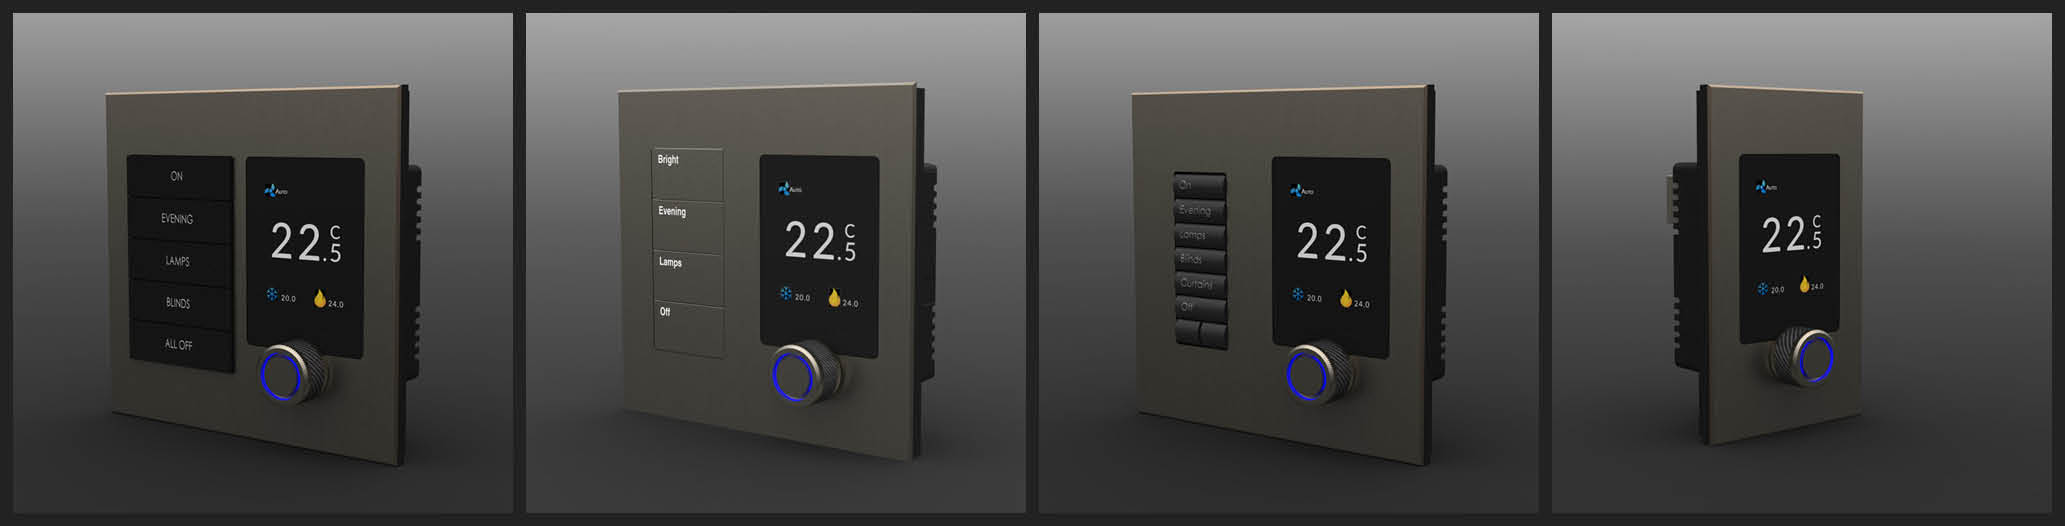 Zentium Thermostat configurations and designs for your home.